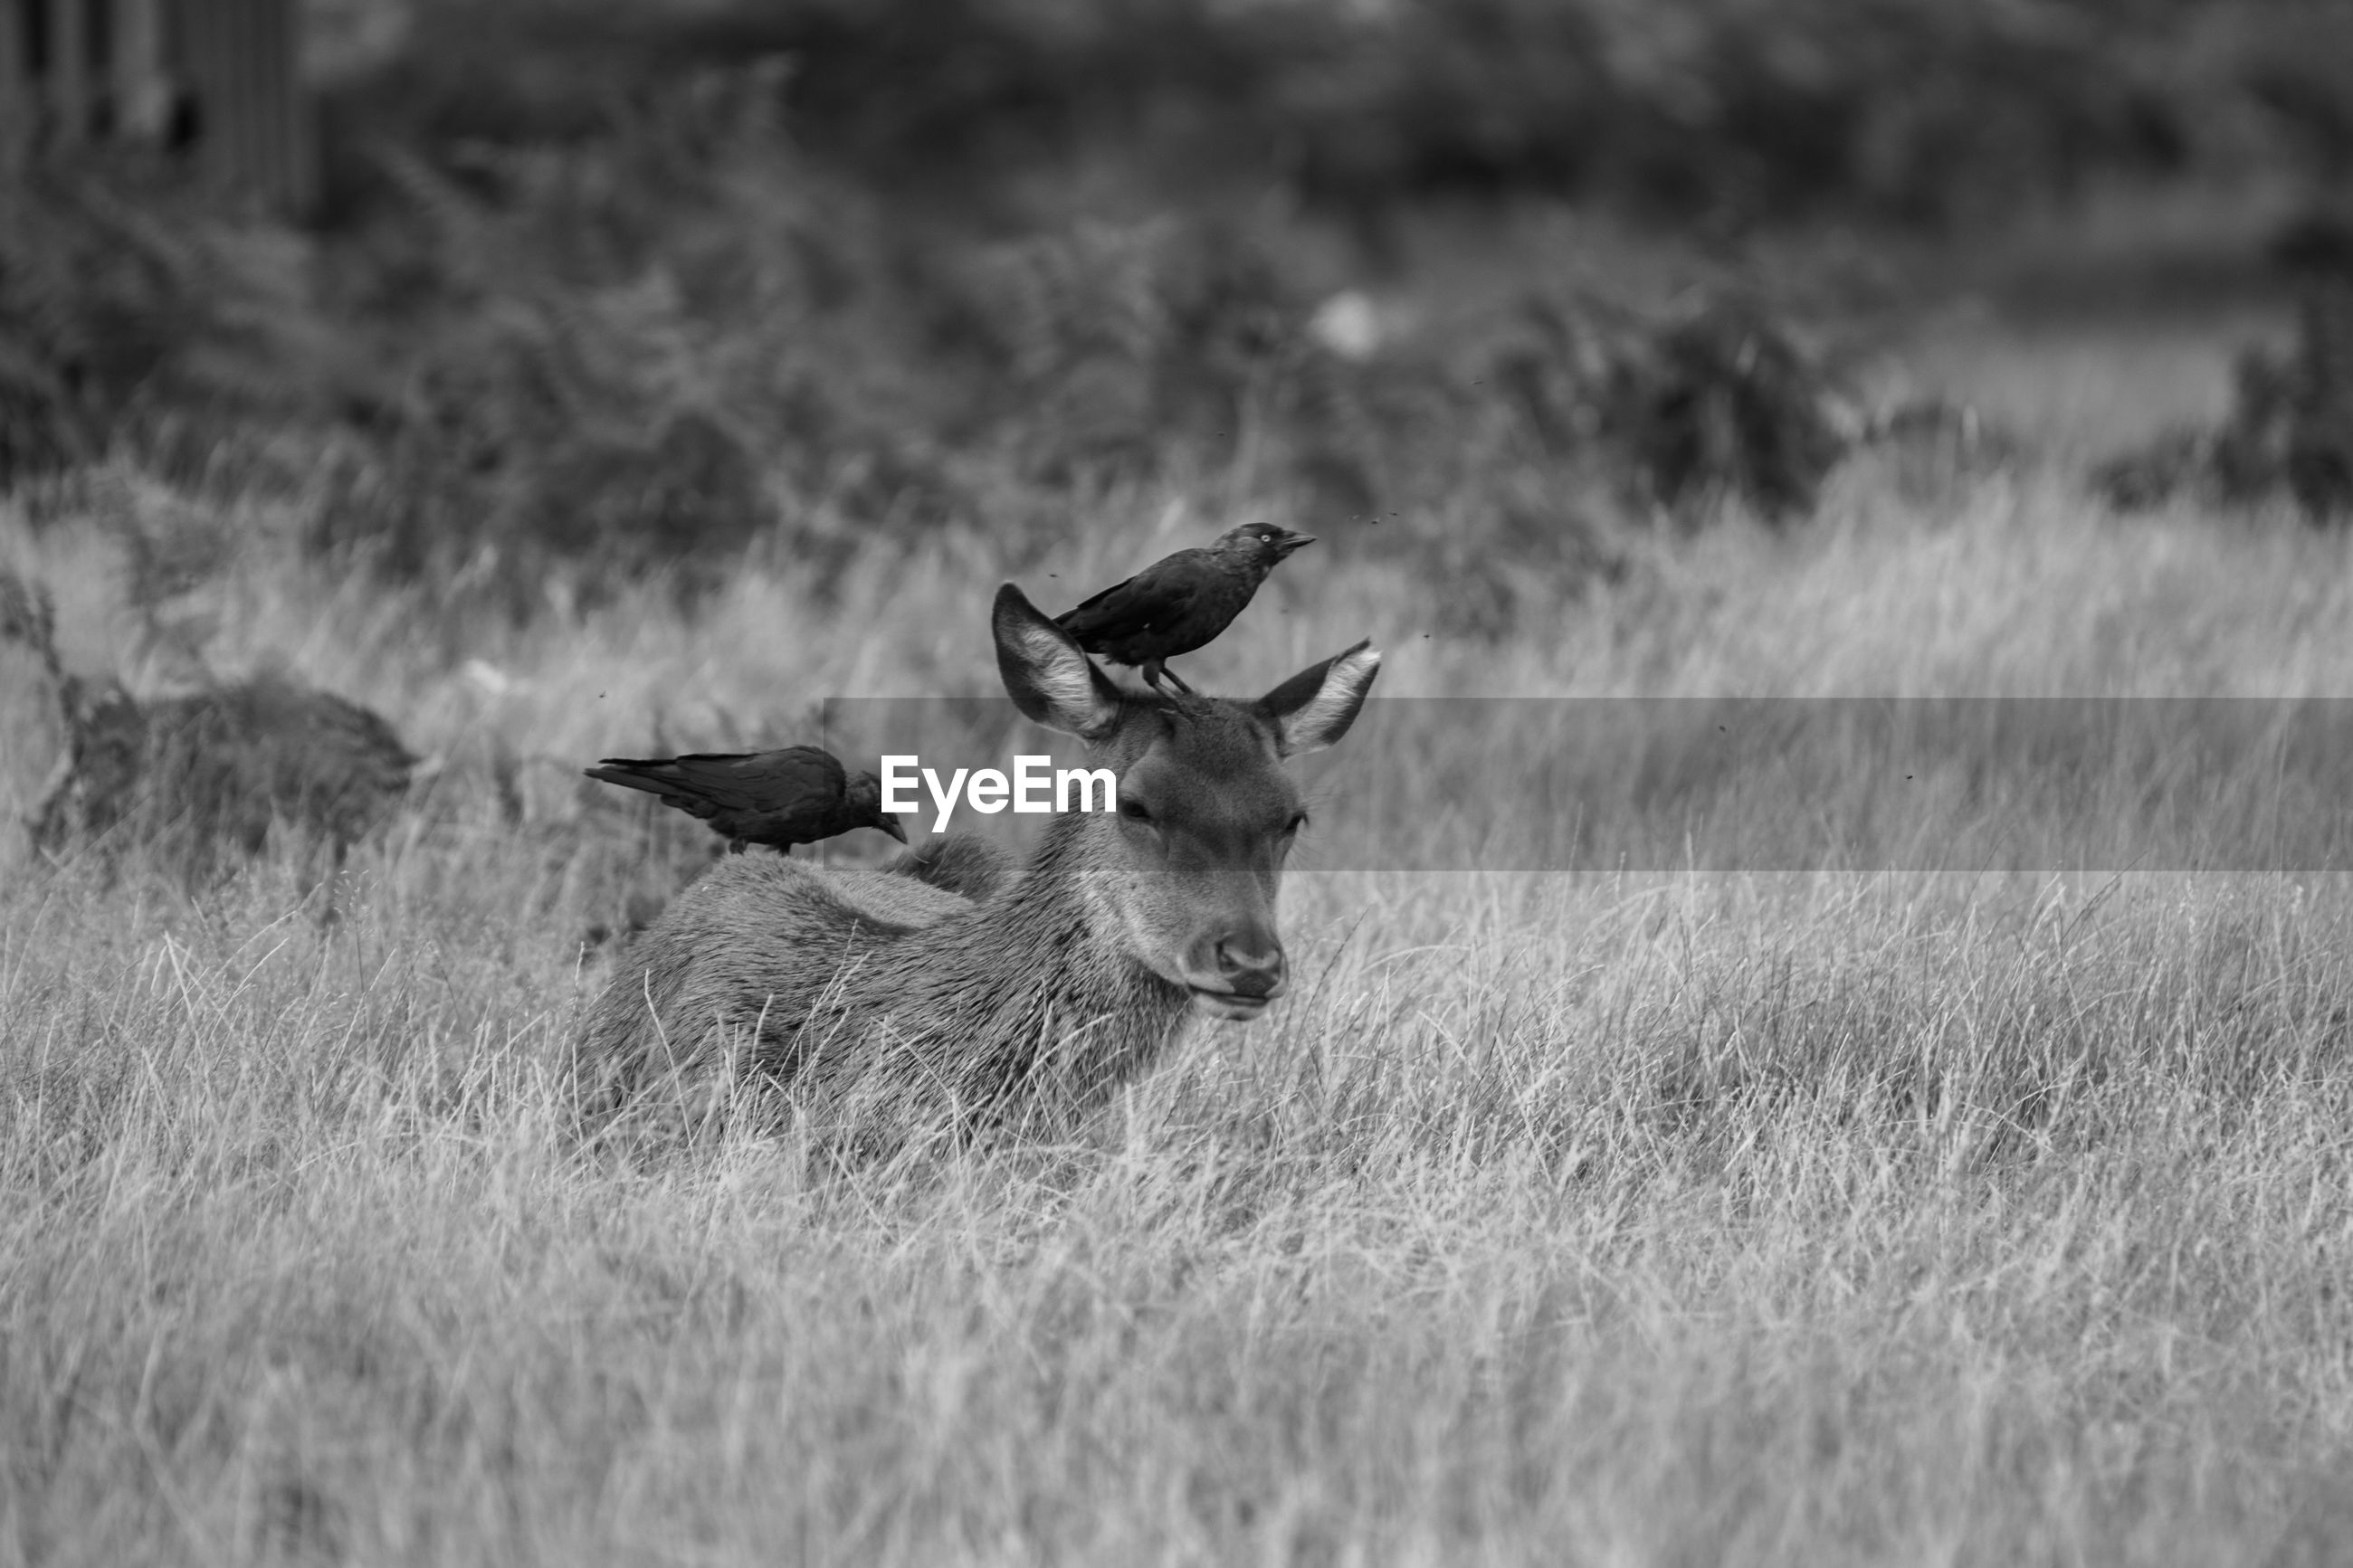 Low angle view of birds perching on deer in field